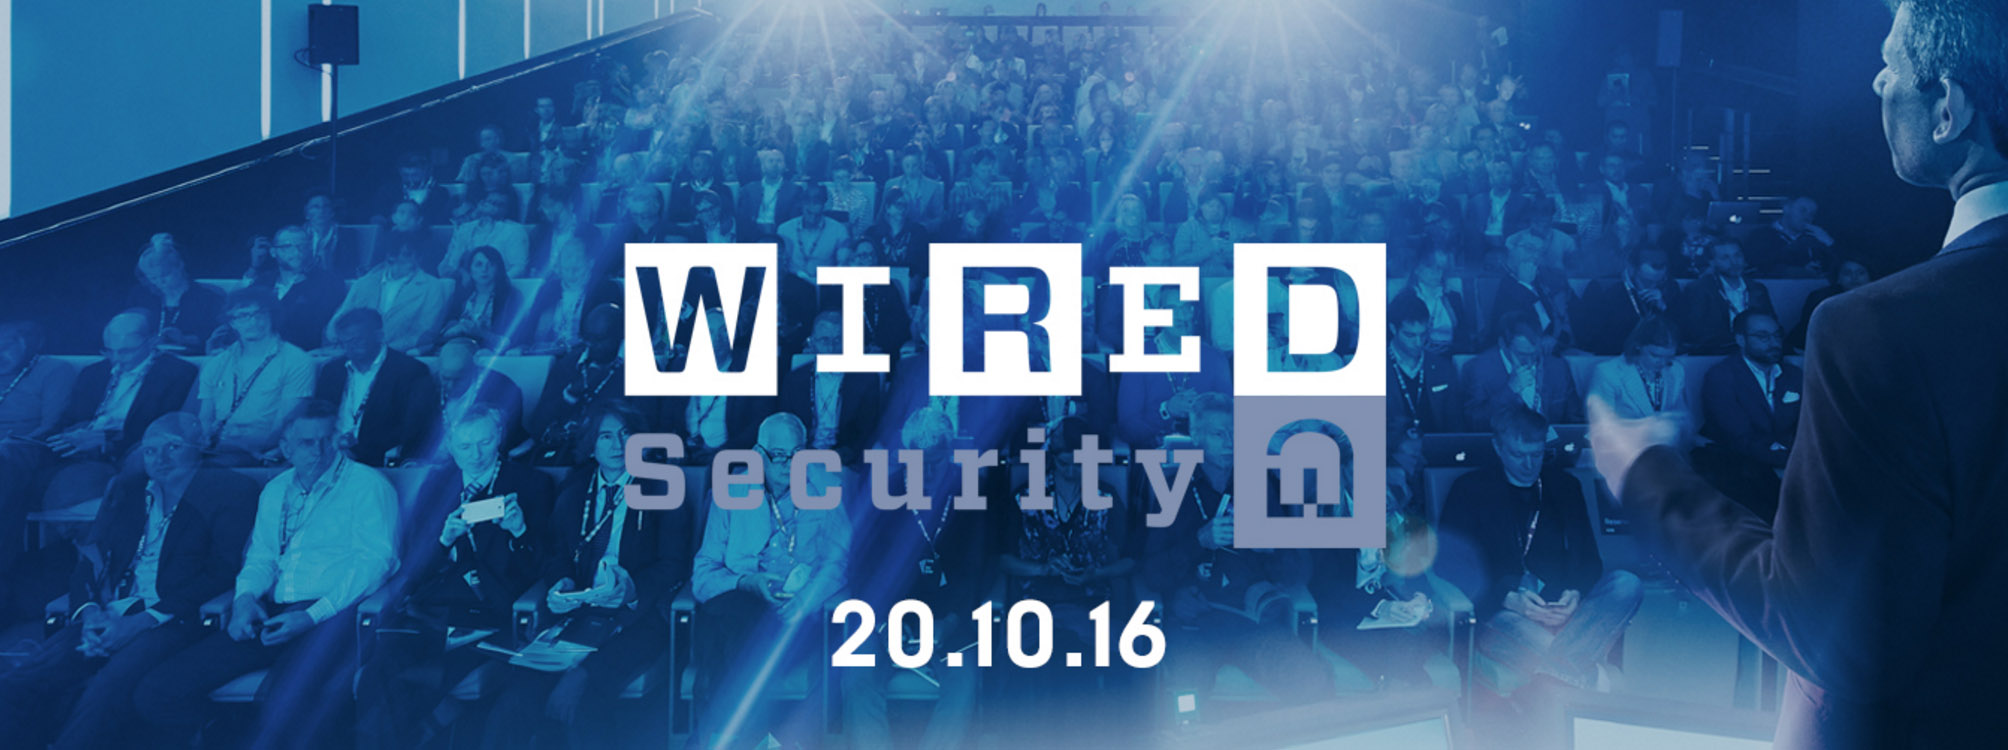 WIRED Security - Level39